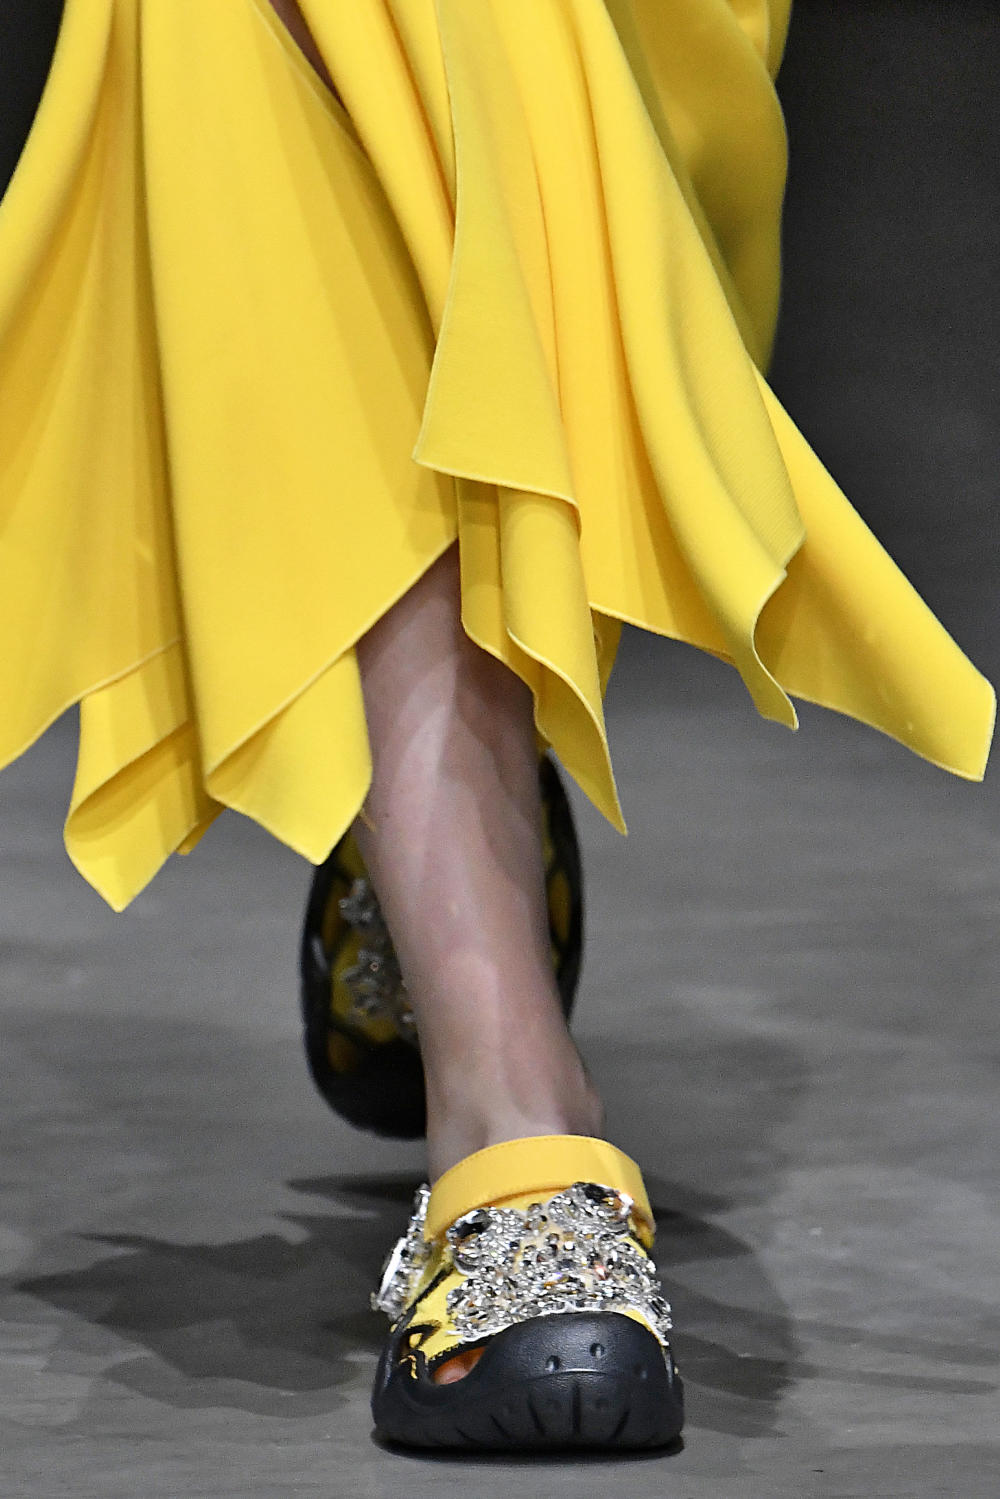 And they even come in yellow! (Victor VIRGILE via Getty Images)